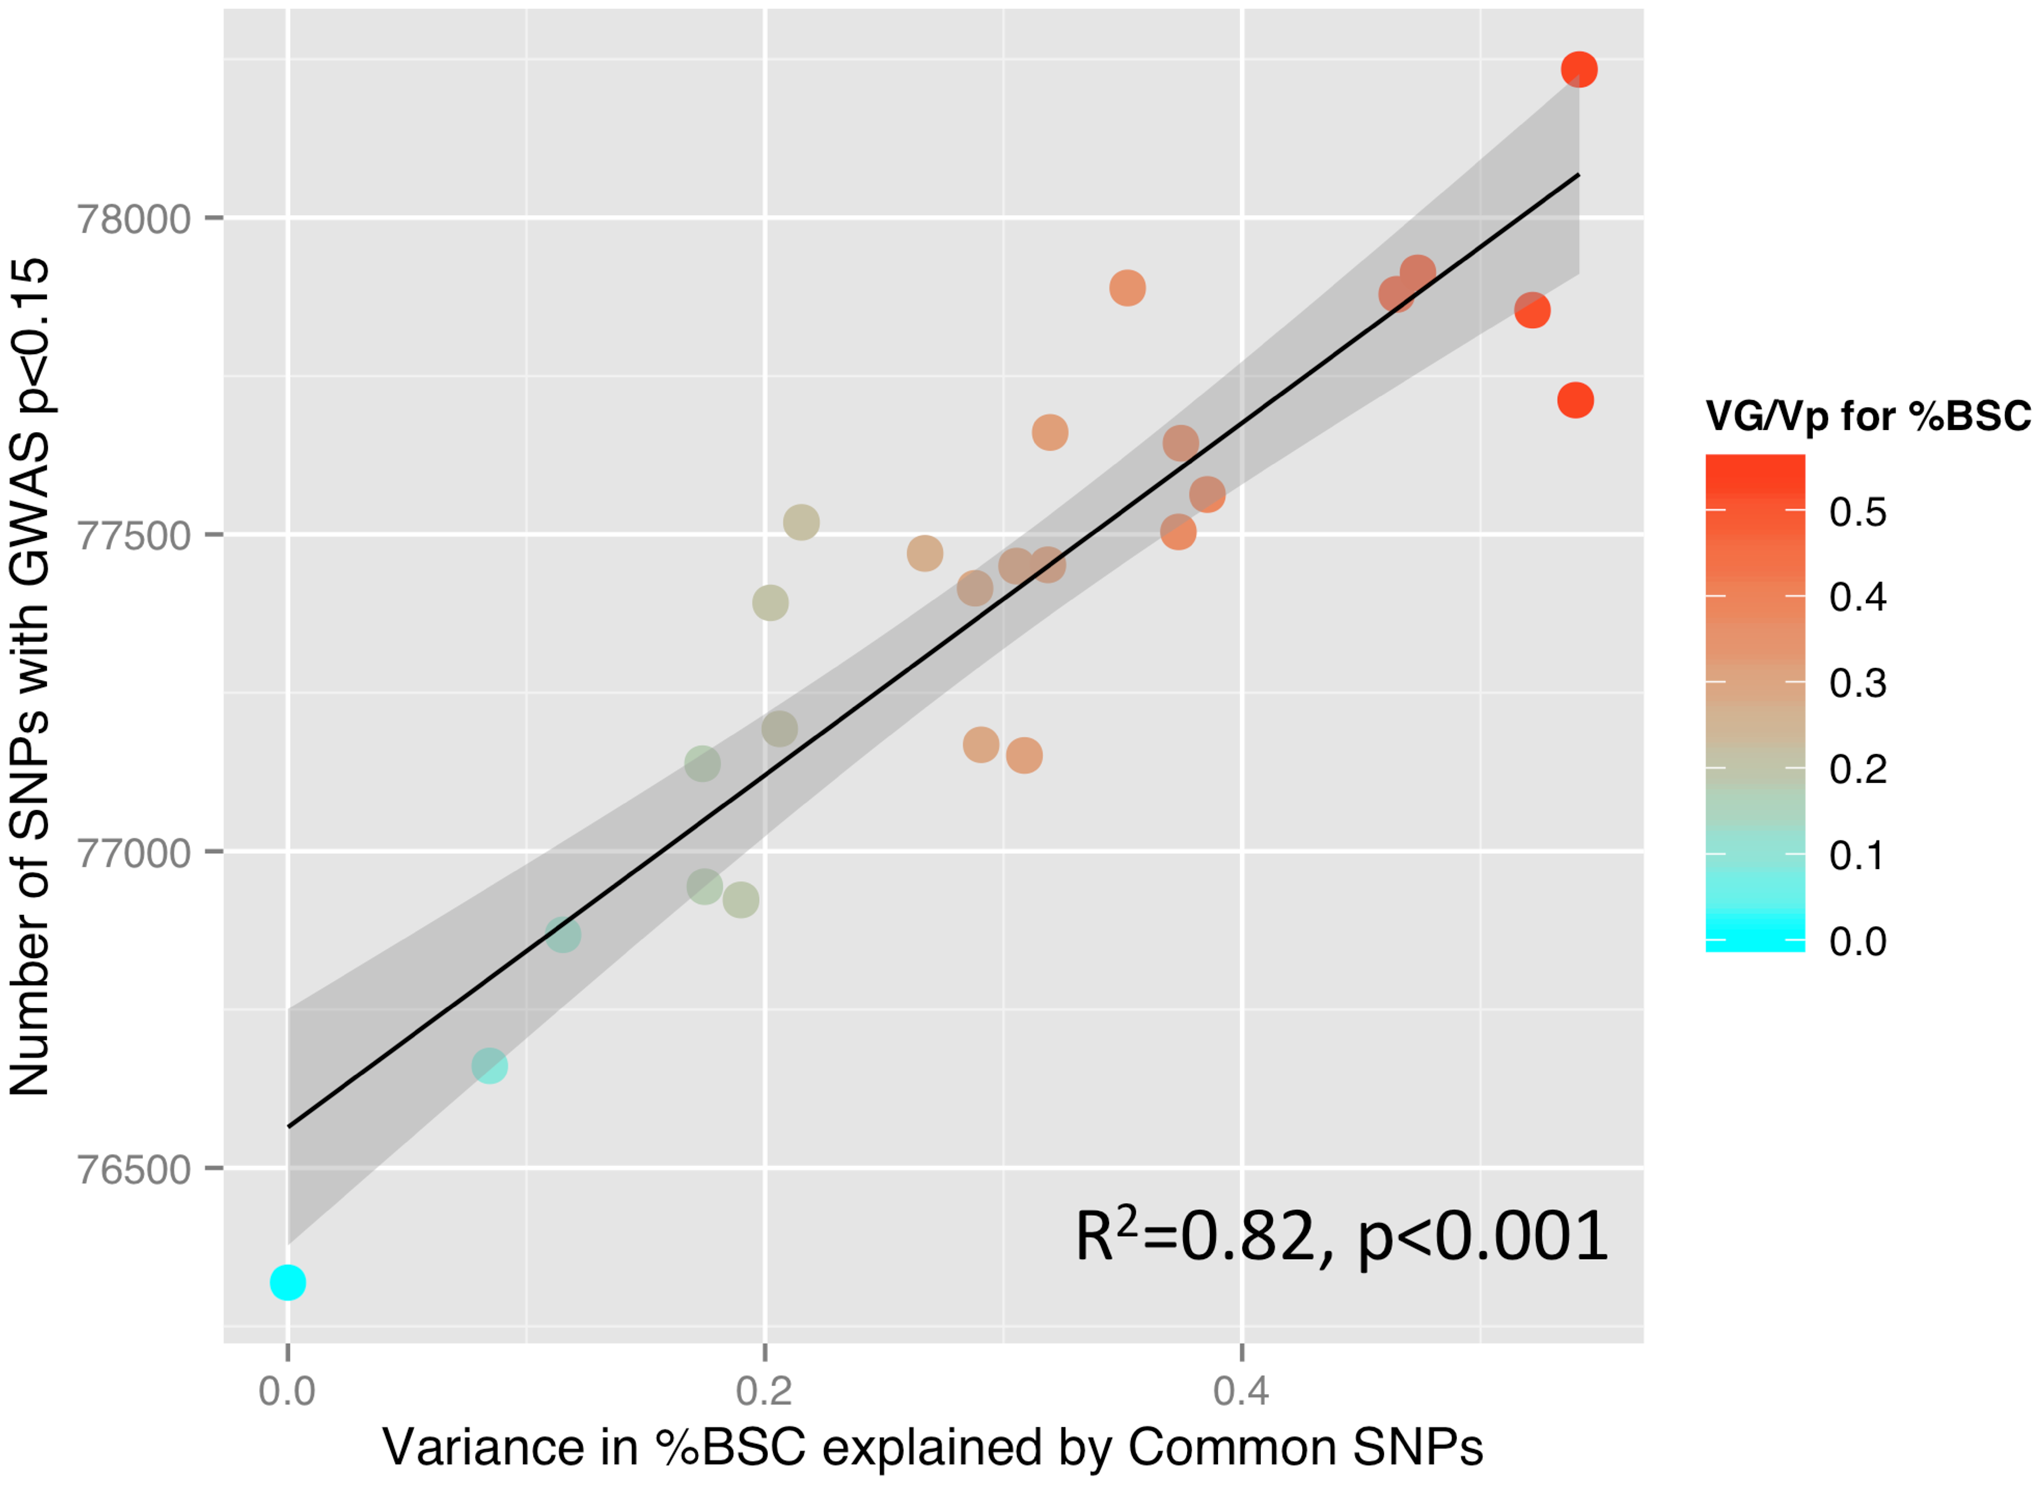 SNP-based estimates of heritability and the number of SNPs detected in a GWAS.